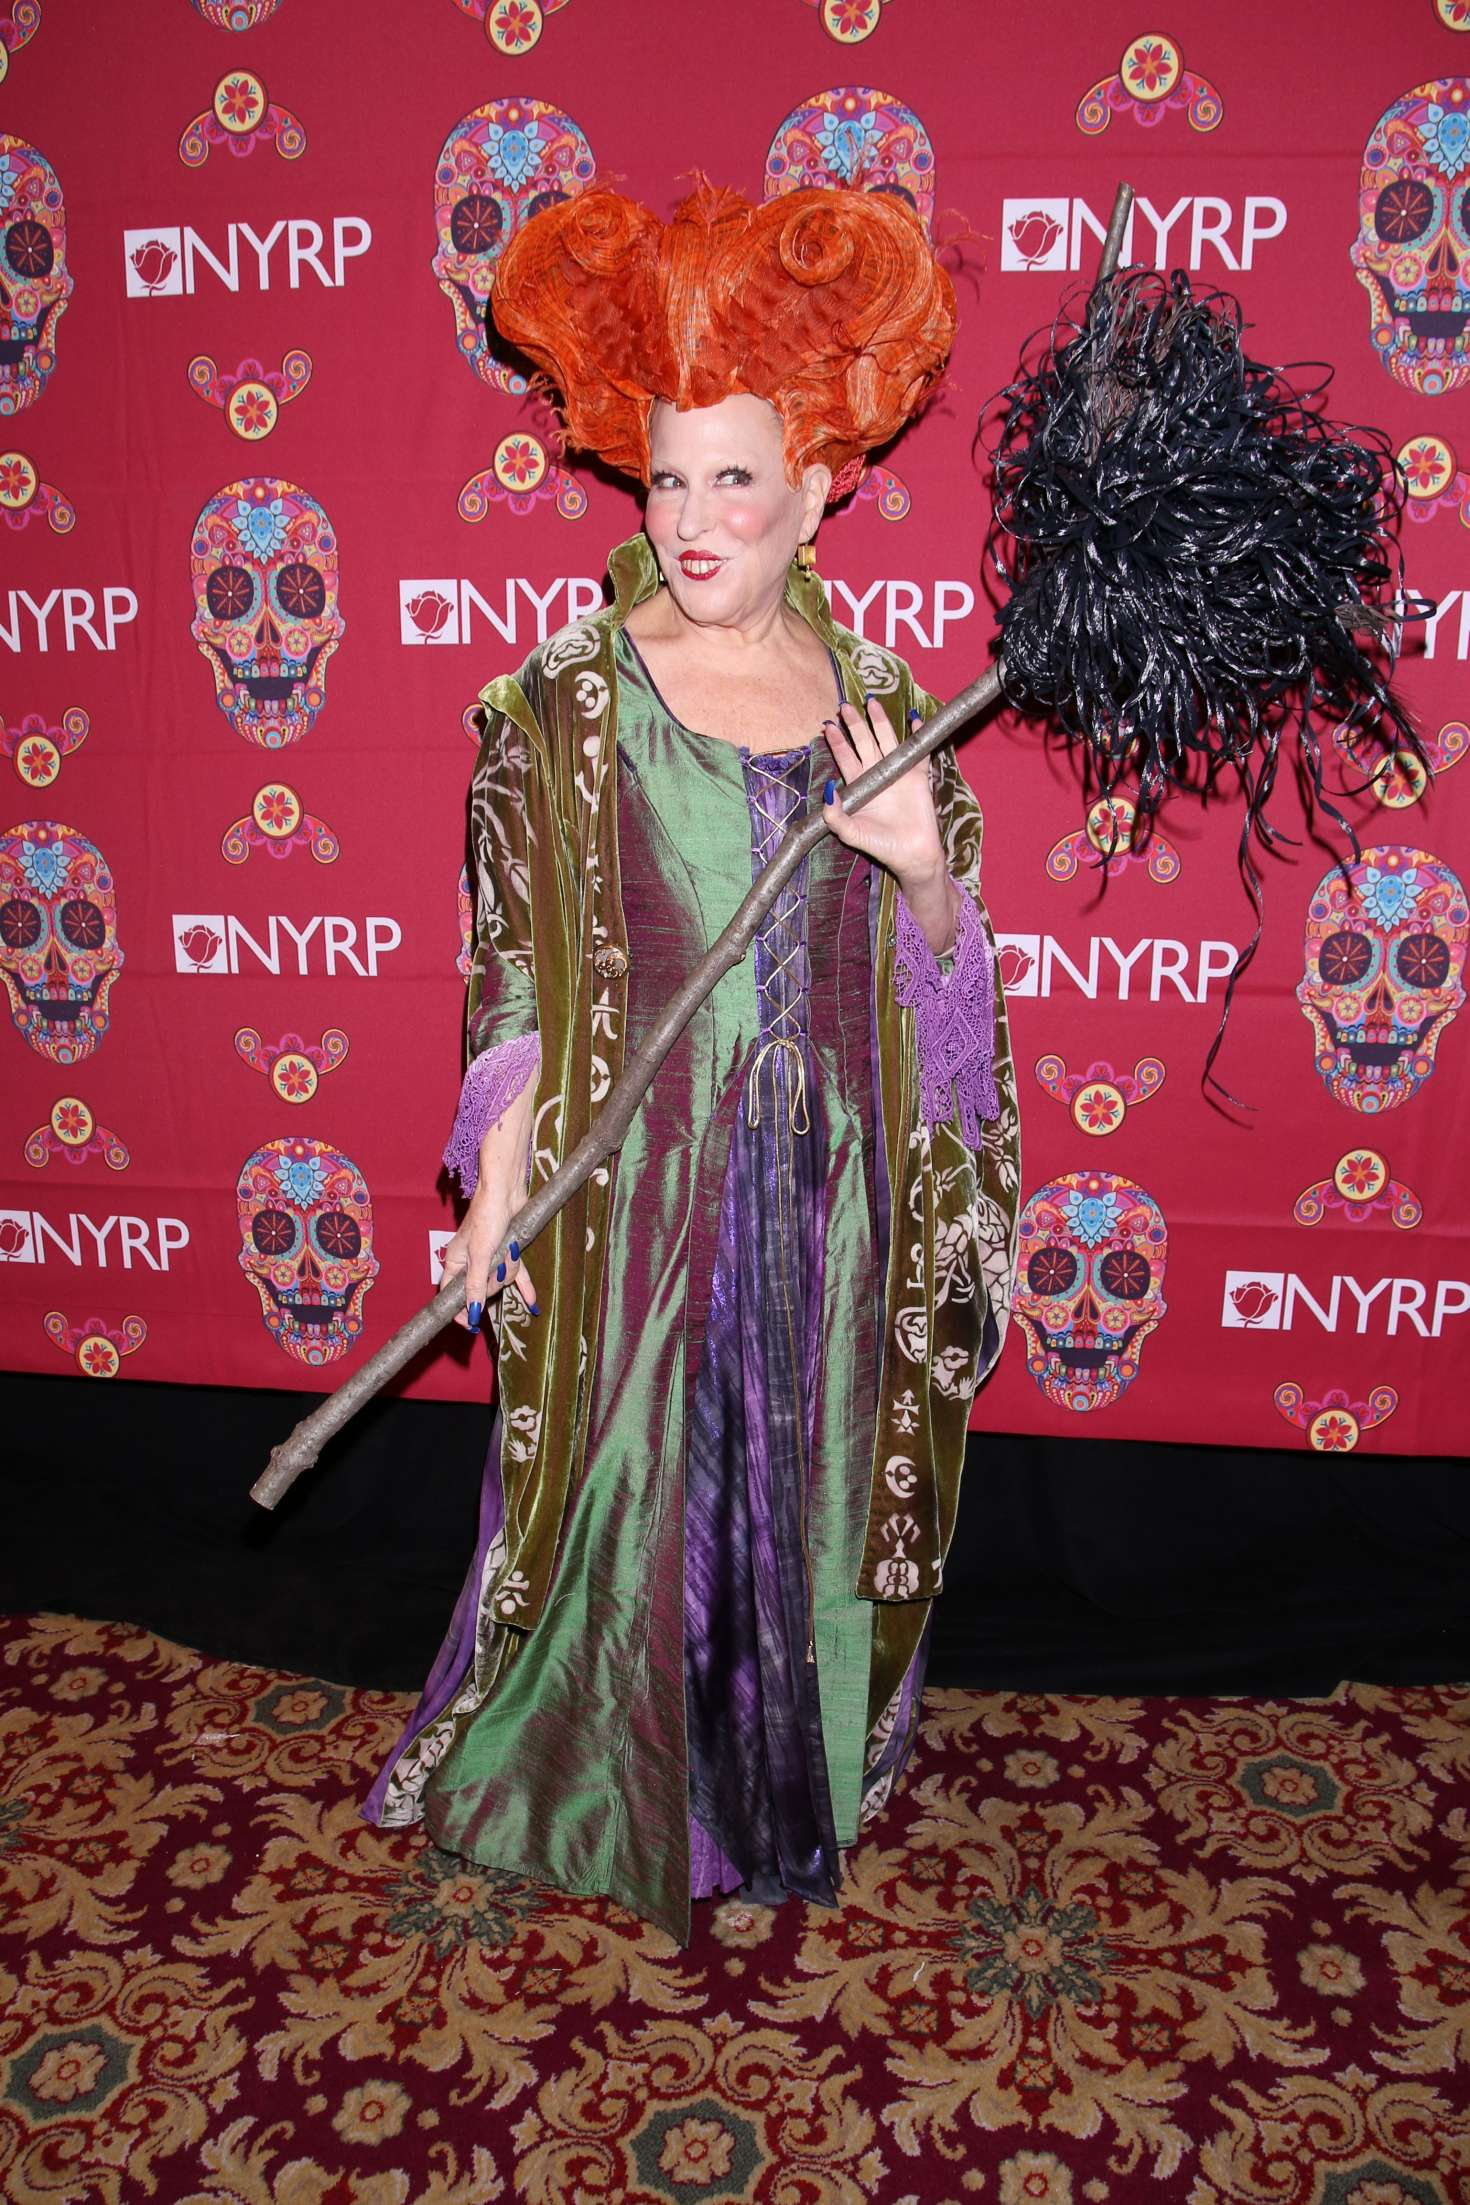 Bette Midler 2016 : Bette Midler: 2016 Halloween Bash to benefit the NYRP -15